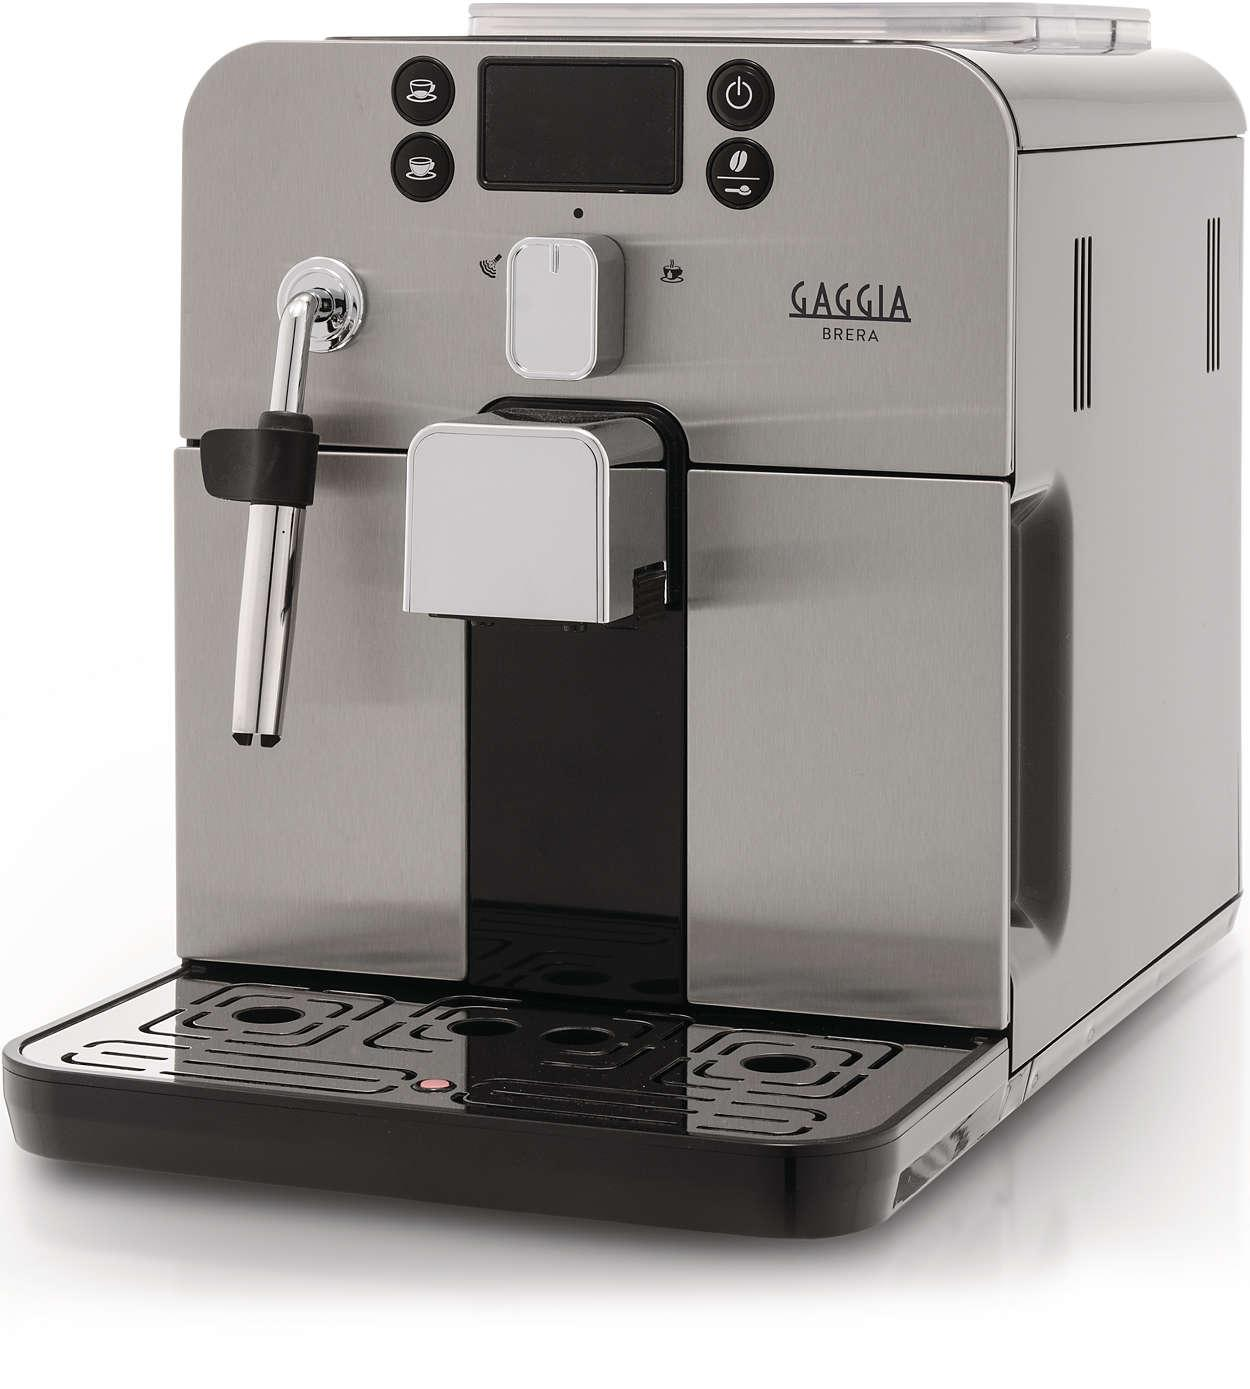 Gaggia Brera Bean to Cup Coffee Machine: Amazon.co.uk ...